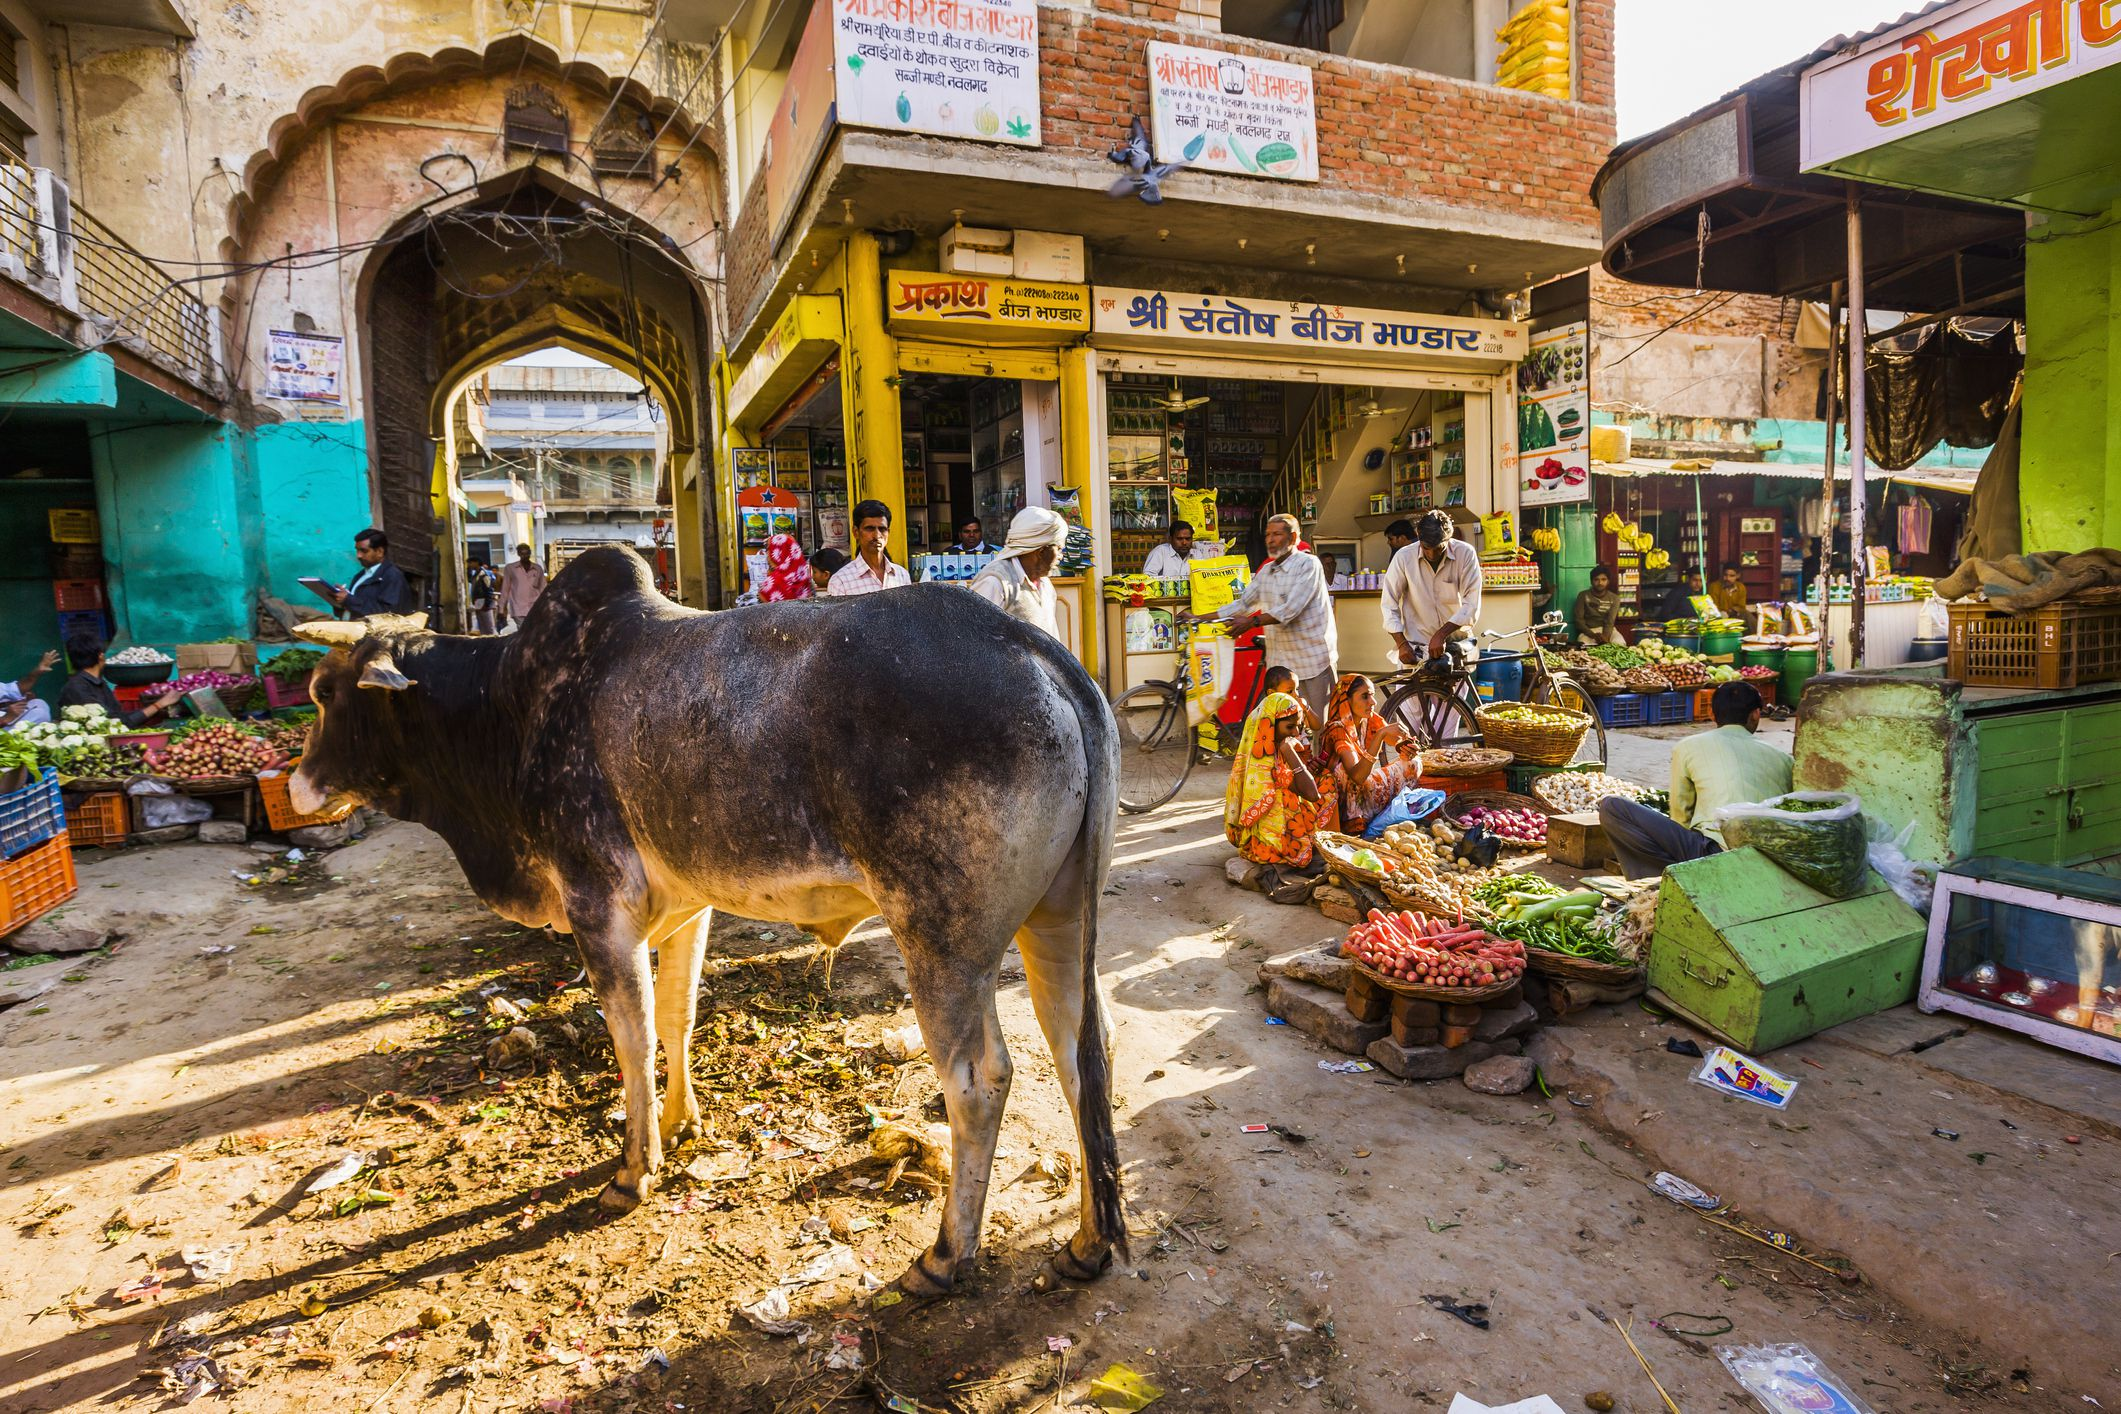 13 Tips to Help Avoid Culture Shock in India